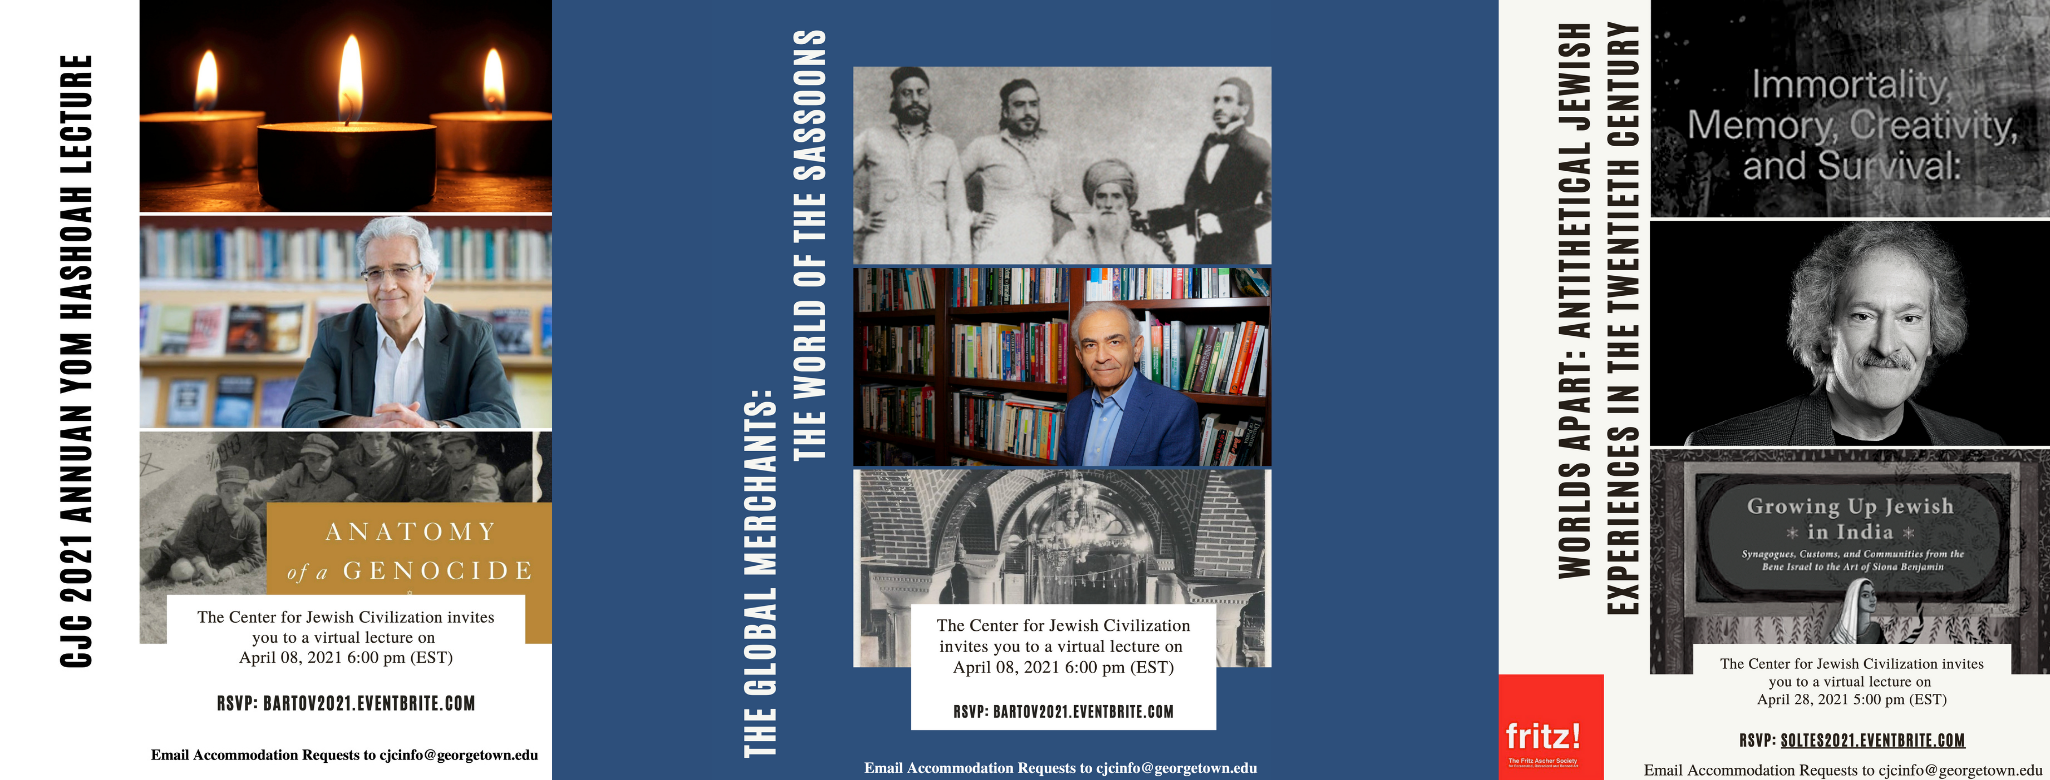 List of Spring 2021 Events - Three Images of lectures by Dr. Omer Bartov, Dr. Joseph Sassoon, and Dr. Ori Soltes.